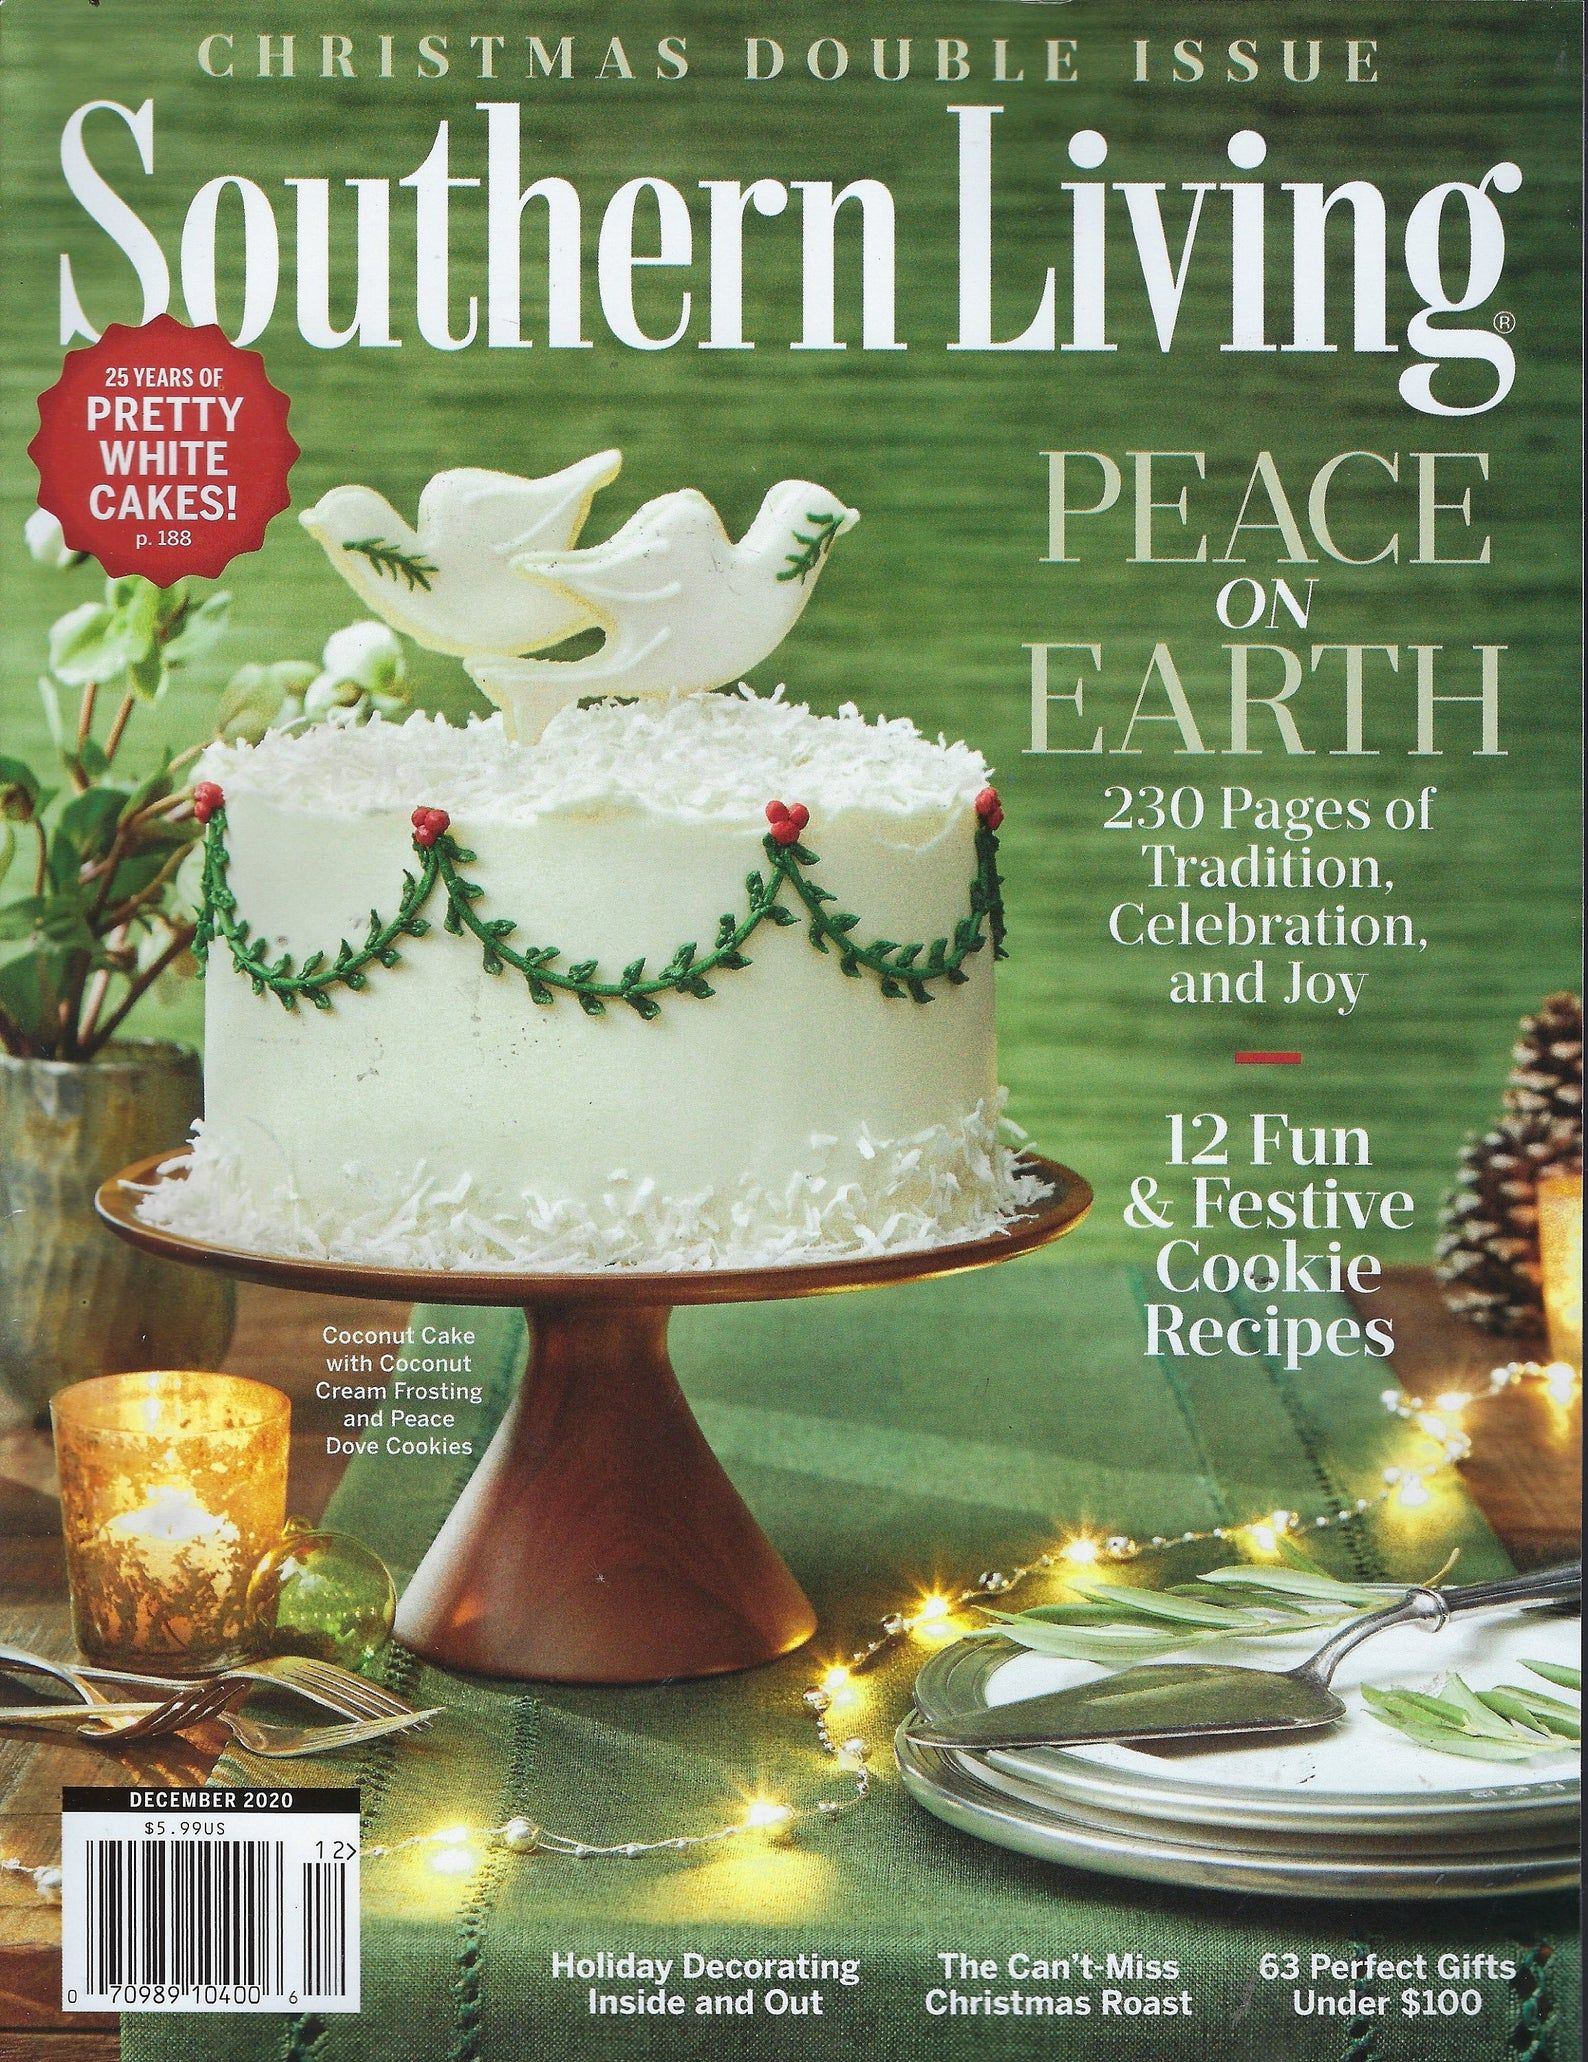 Southern Living Dec 2021 Christmas Buttermints Southern Living December 2020 Etsy Southern Living Recipes Southern Recipes